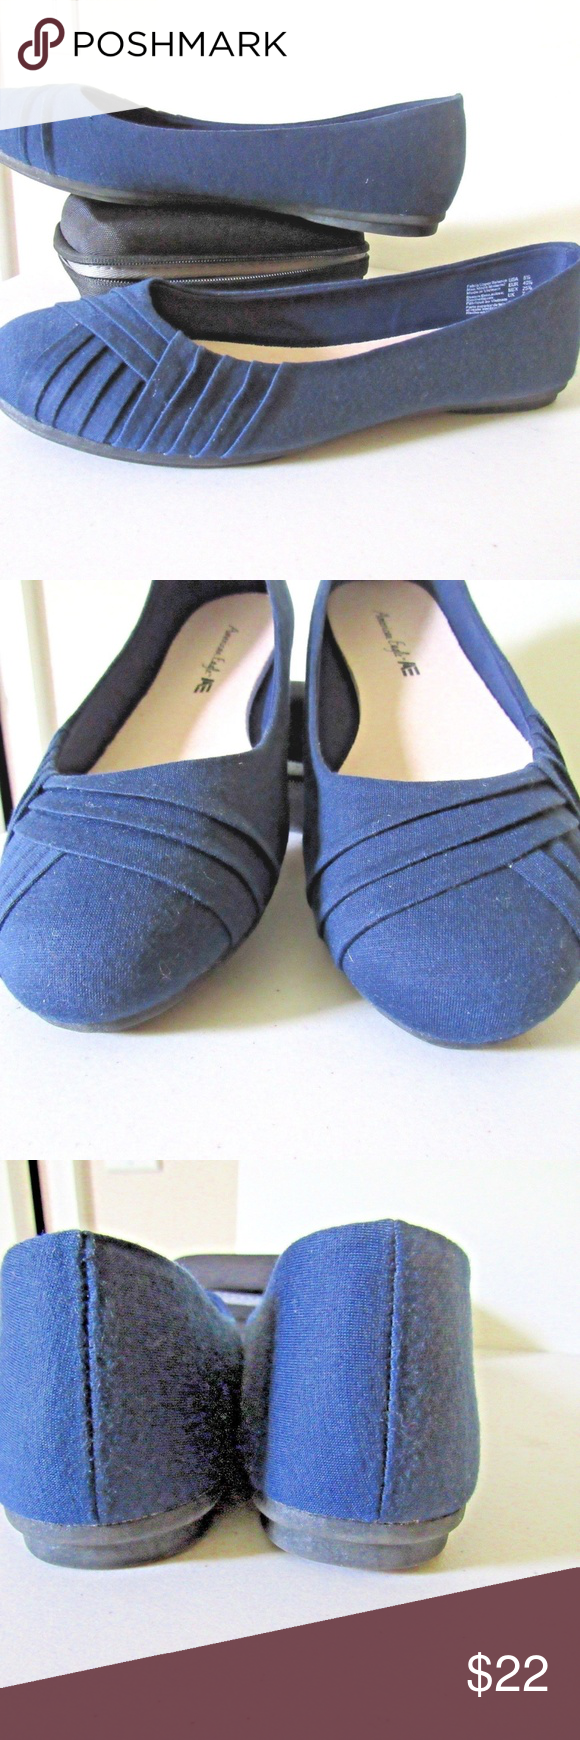 e9733490b388e American Eagle Navy-Blue-Casual-Flats-Shoes size 8 1/2 Med. width pleated  toe American Eagle Shoes Flats & Loafers